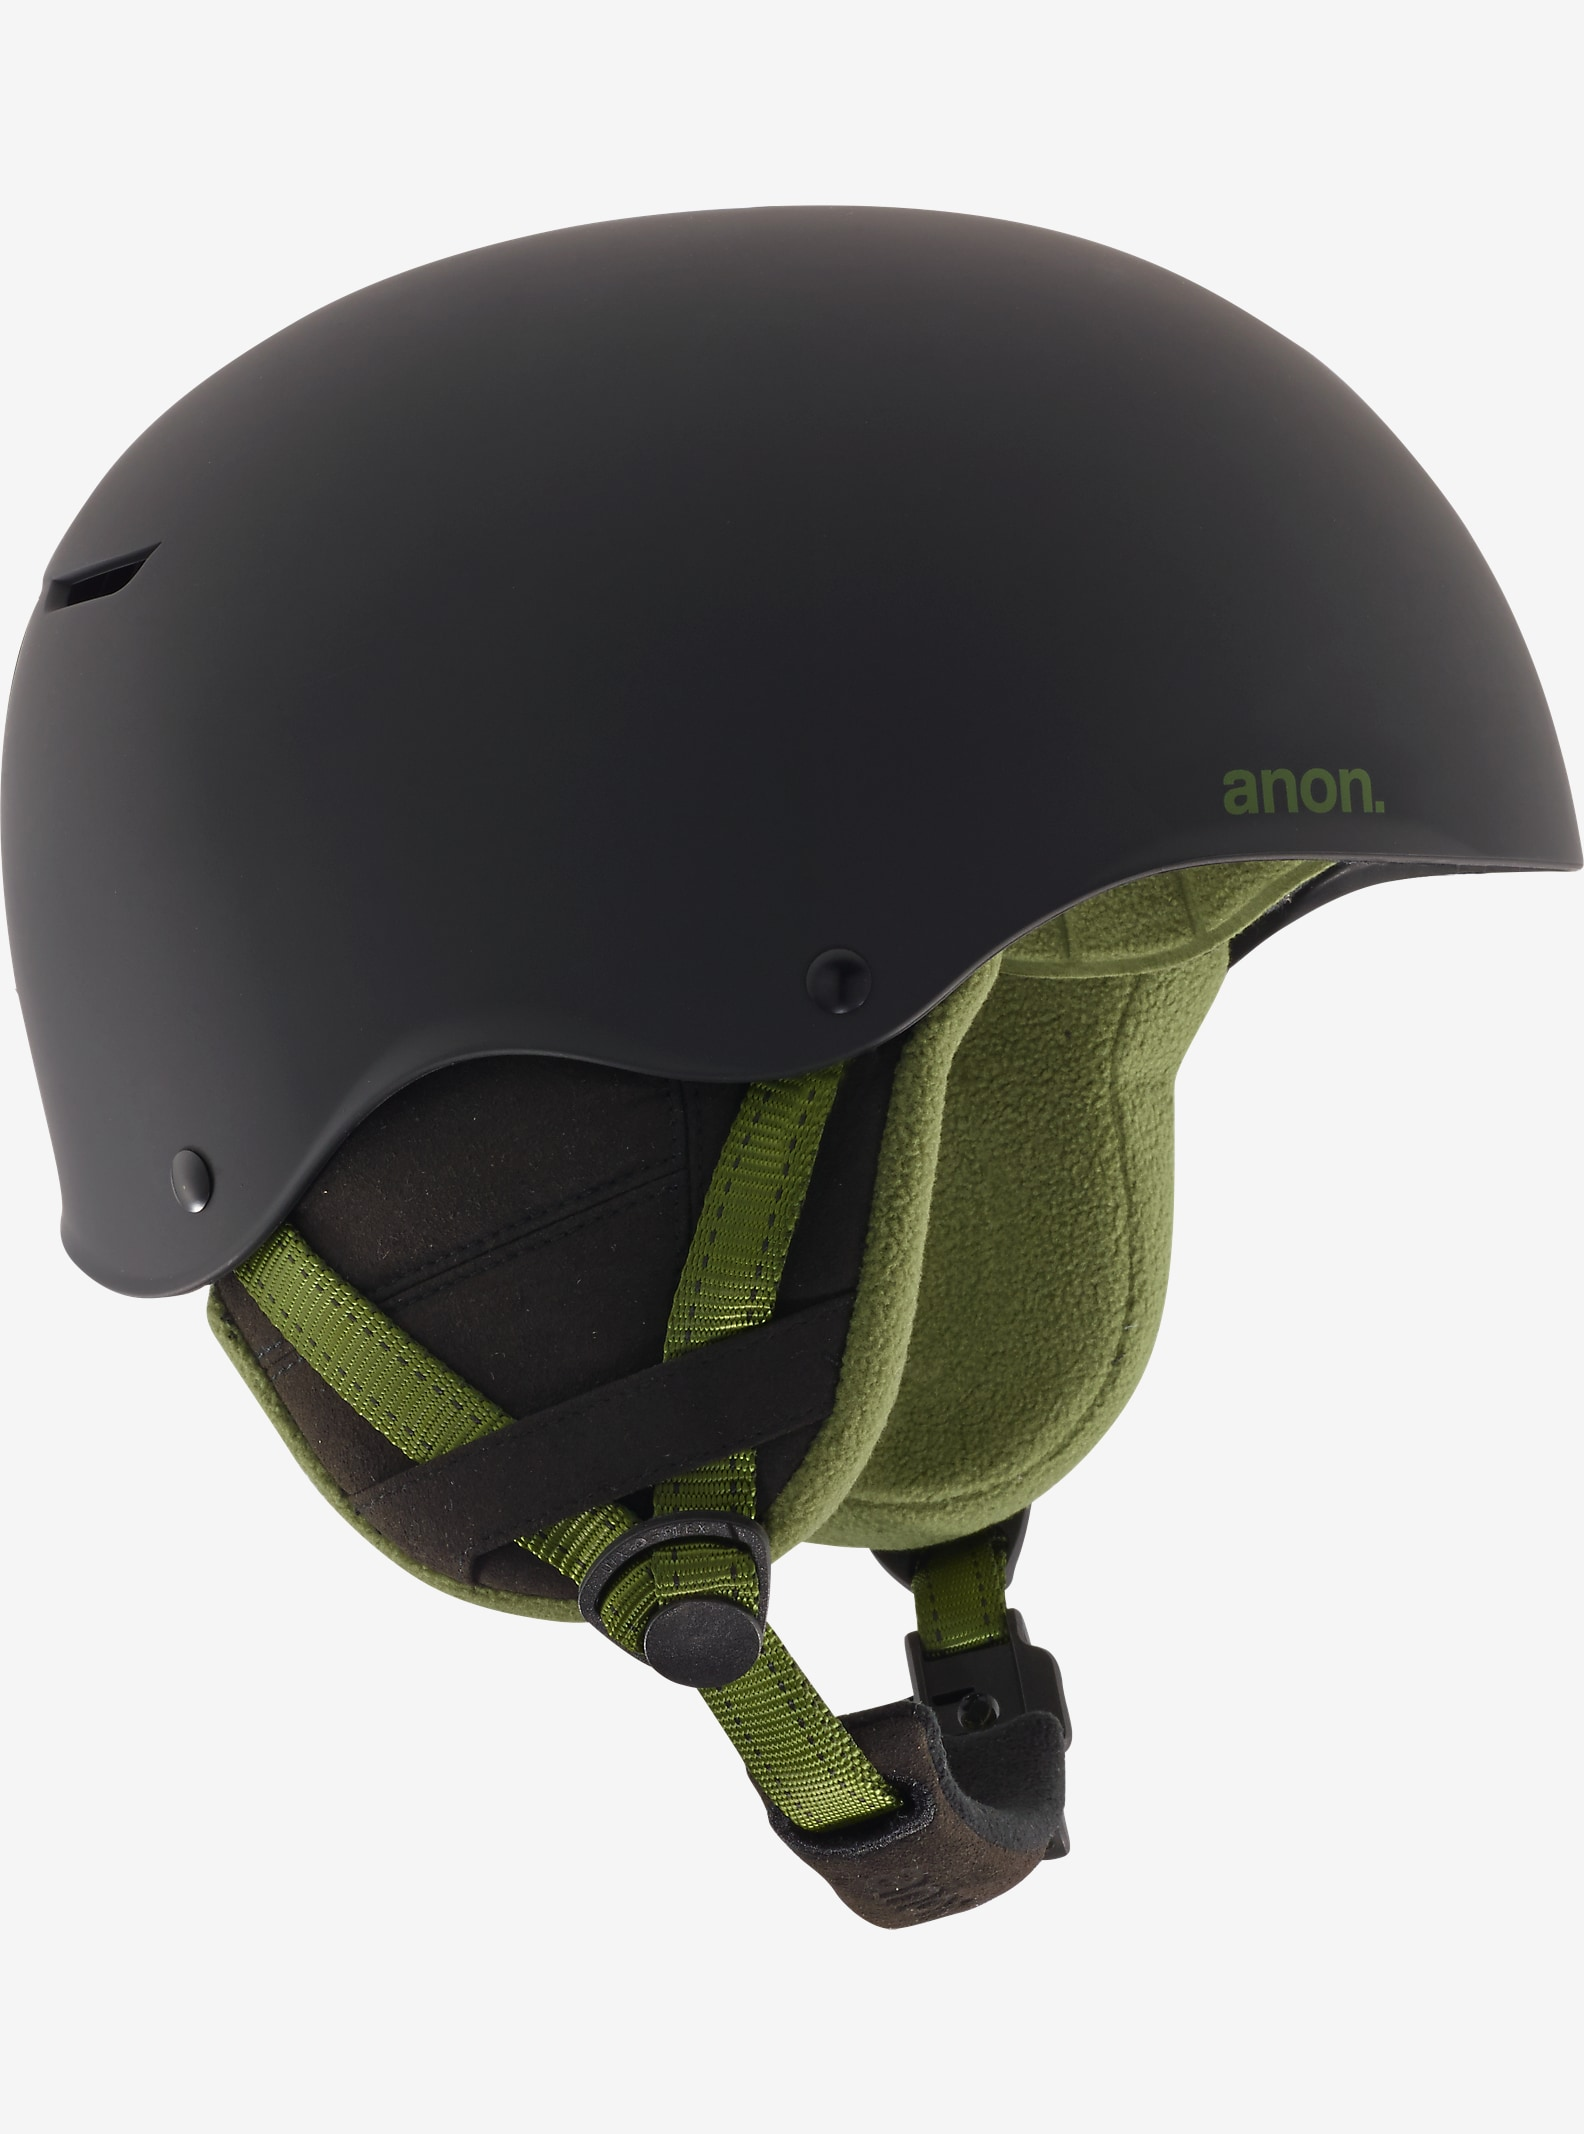 anon. Endure Helmet shown in Black Olive